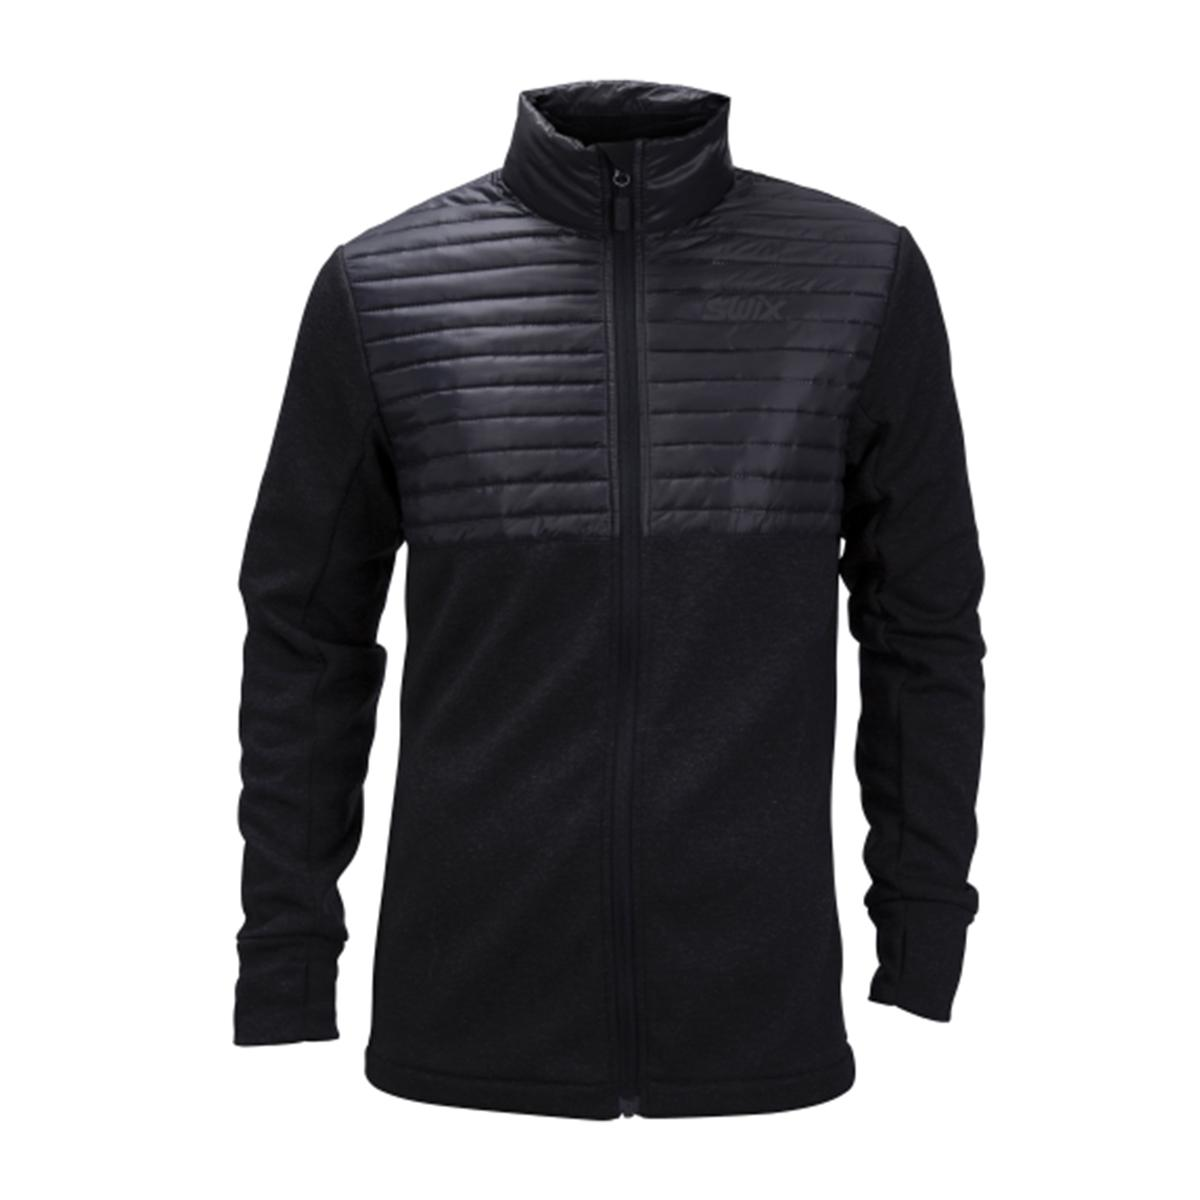 Swix Men's Blizzard Hybrid Jacket in Black